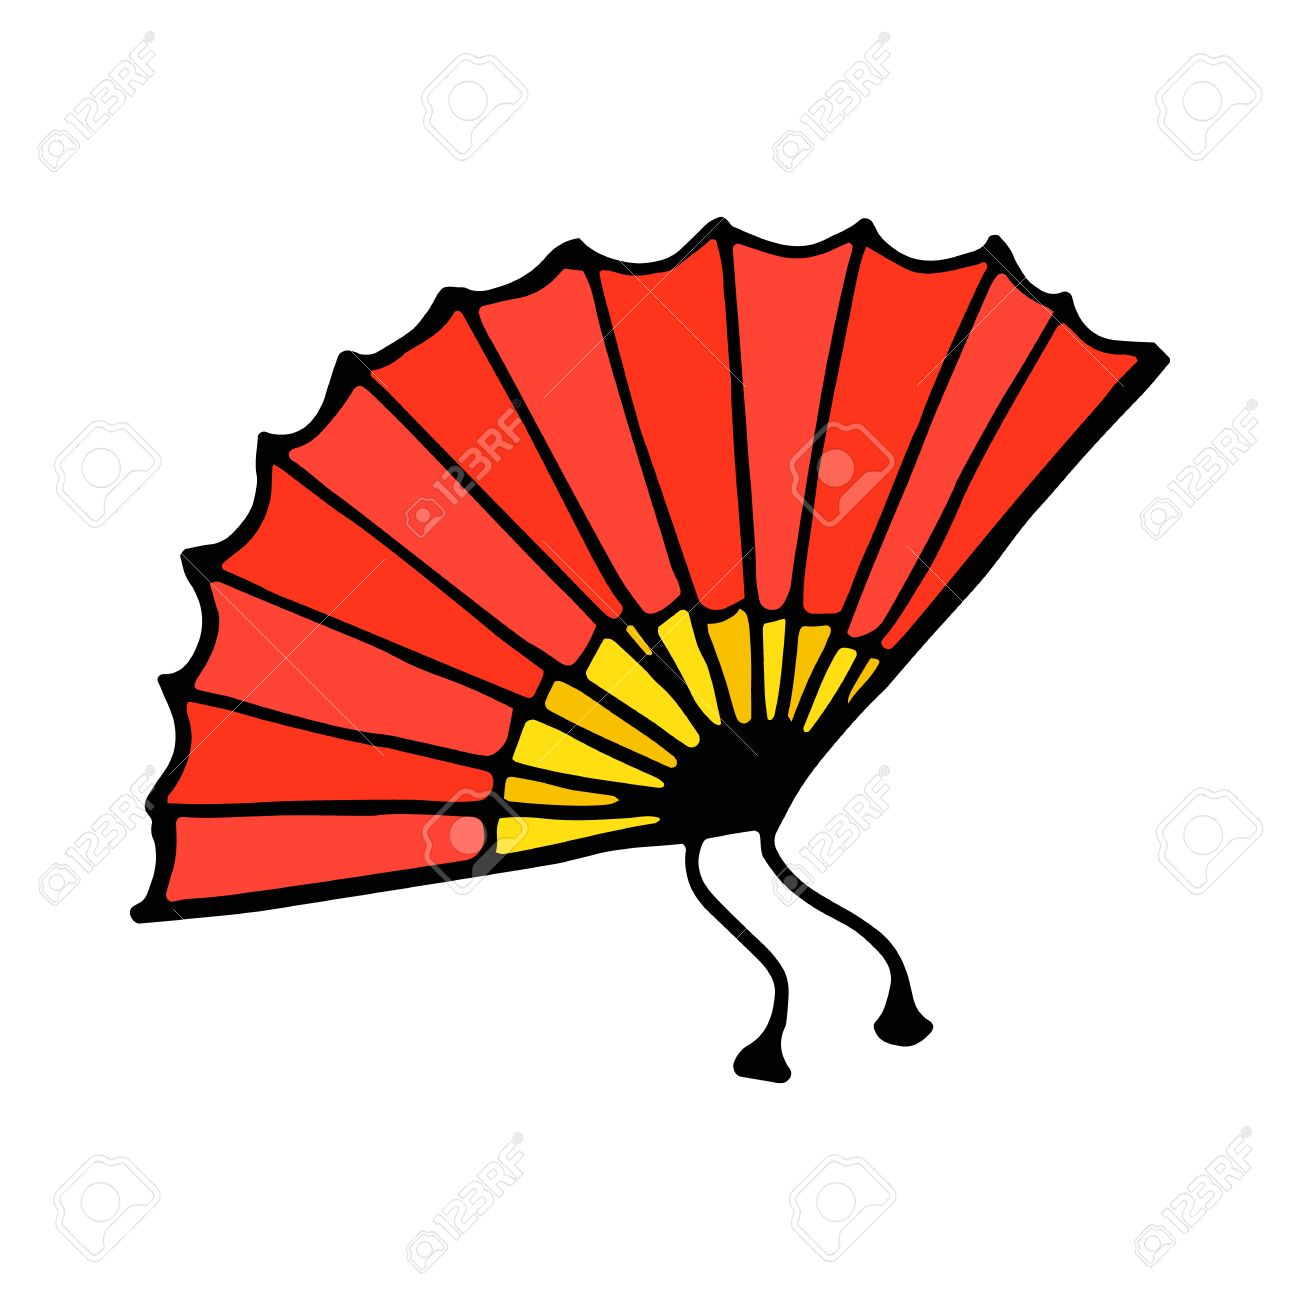 electric fan clipart at getdrawings com free for personal use rh getdrawings com fan clipart black and white clipart fan page